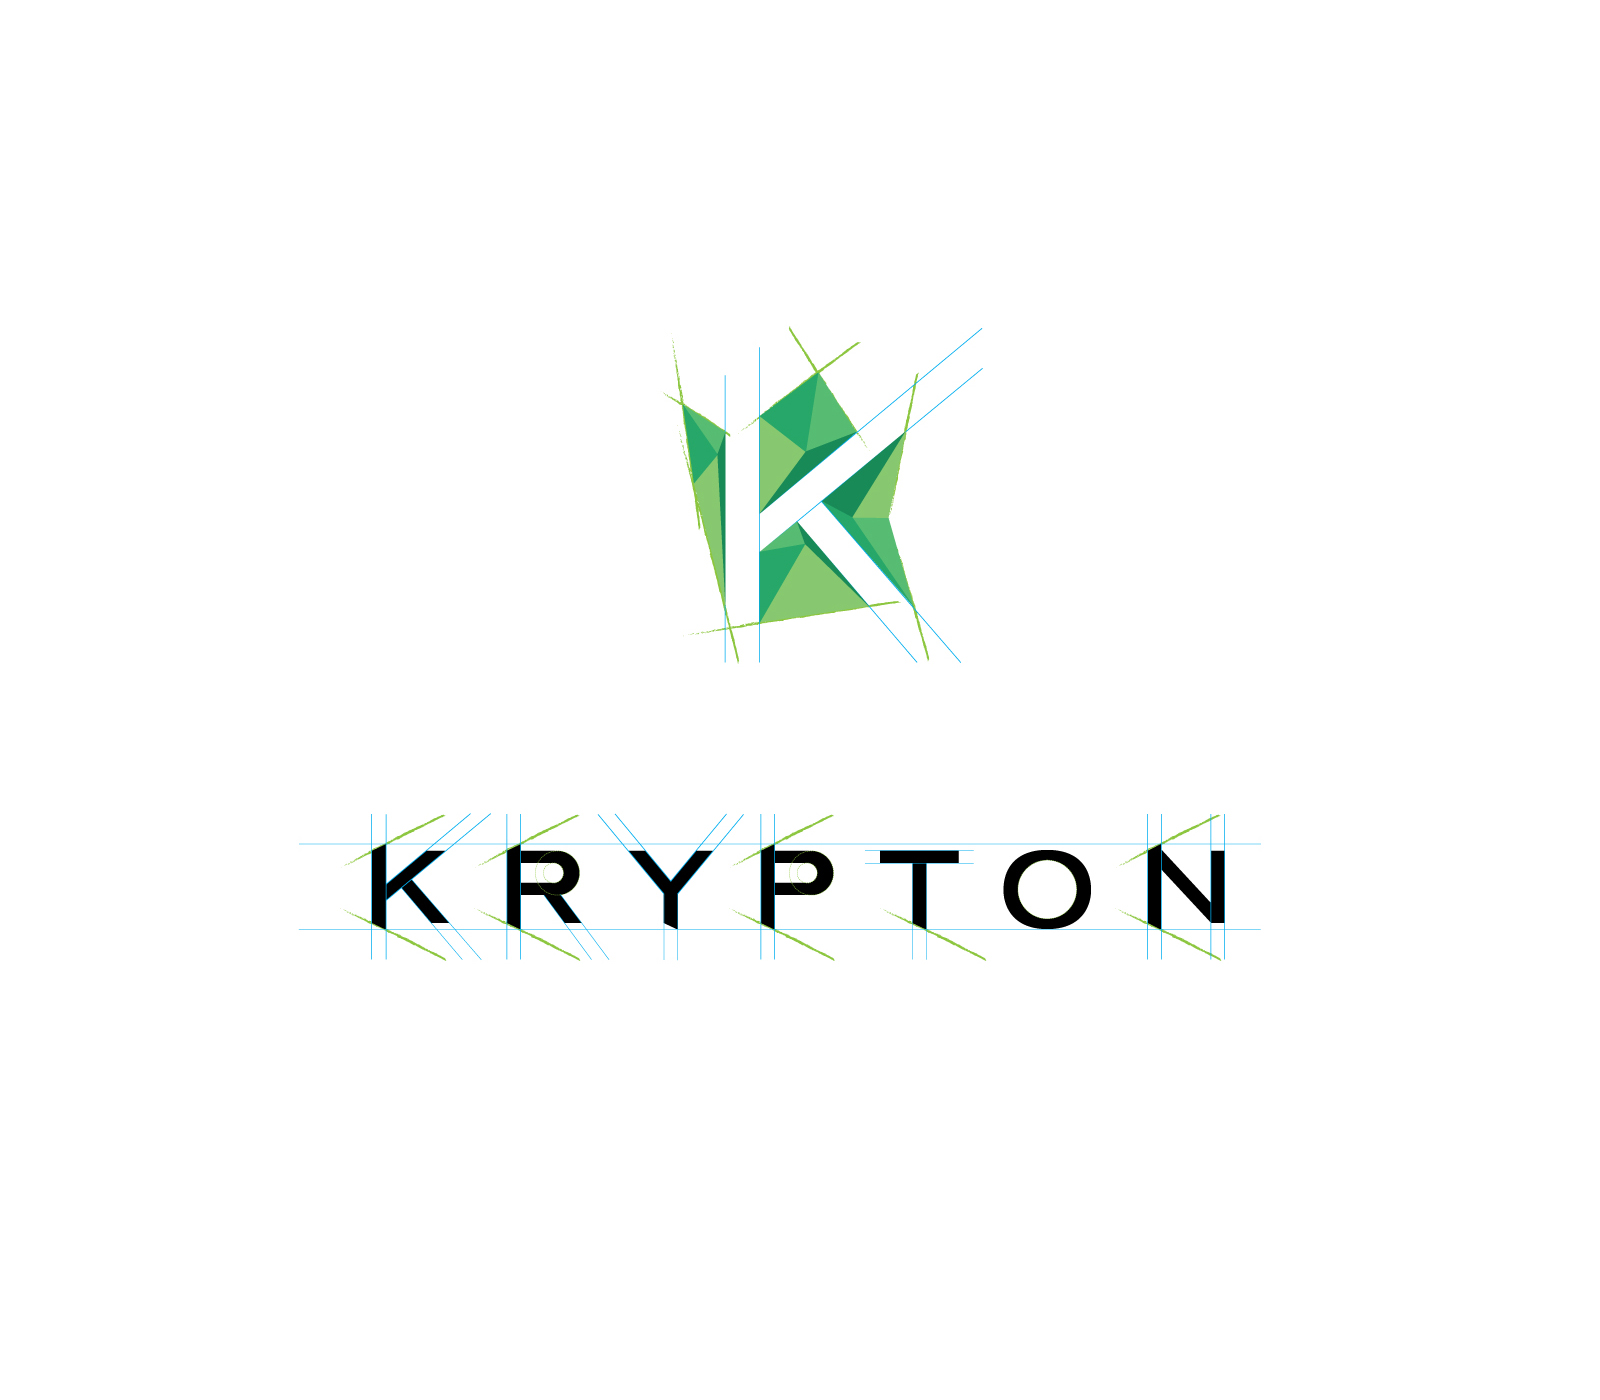 Krypton-drafting